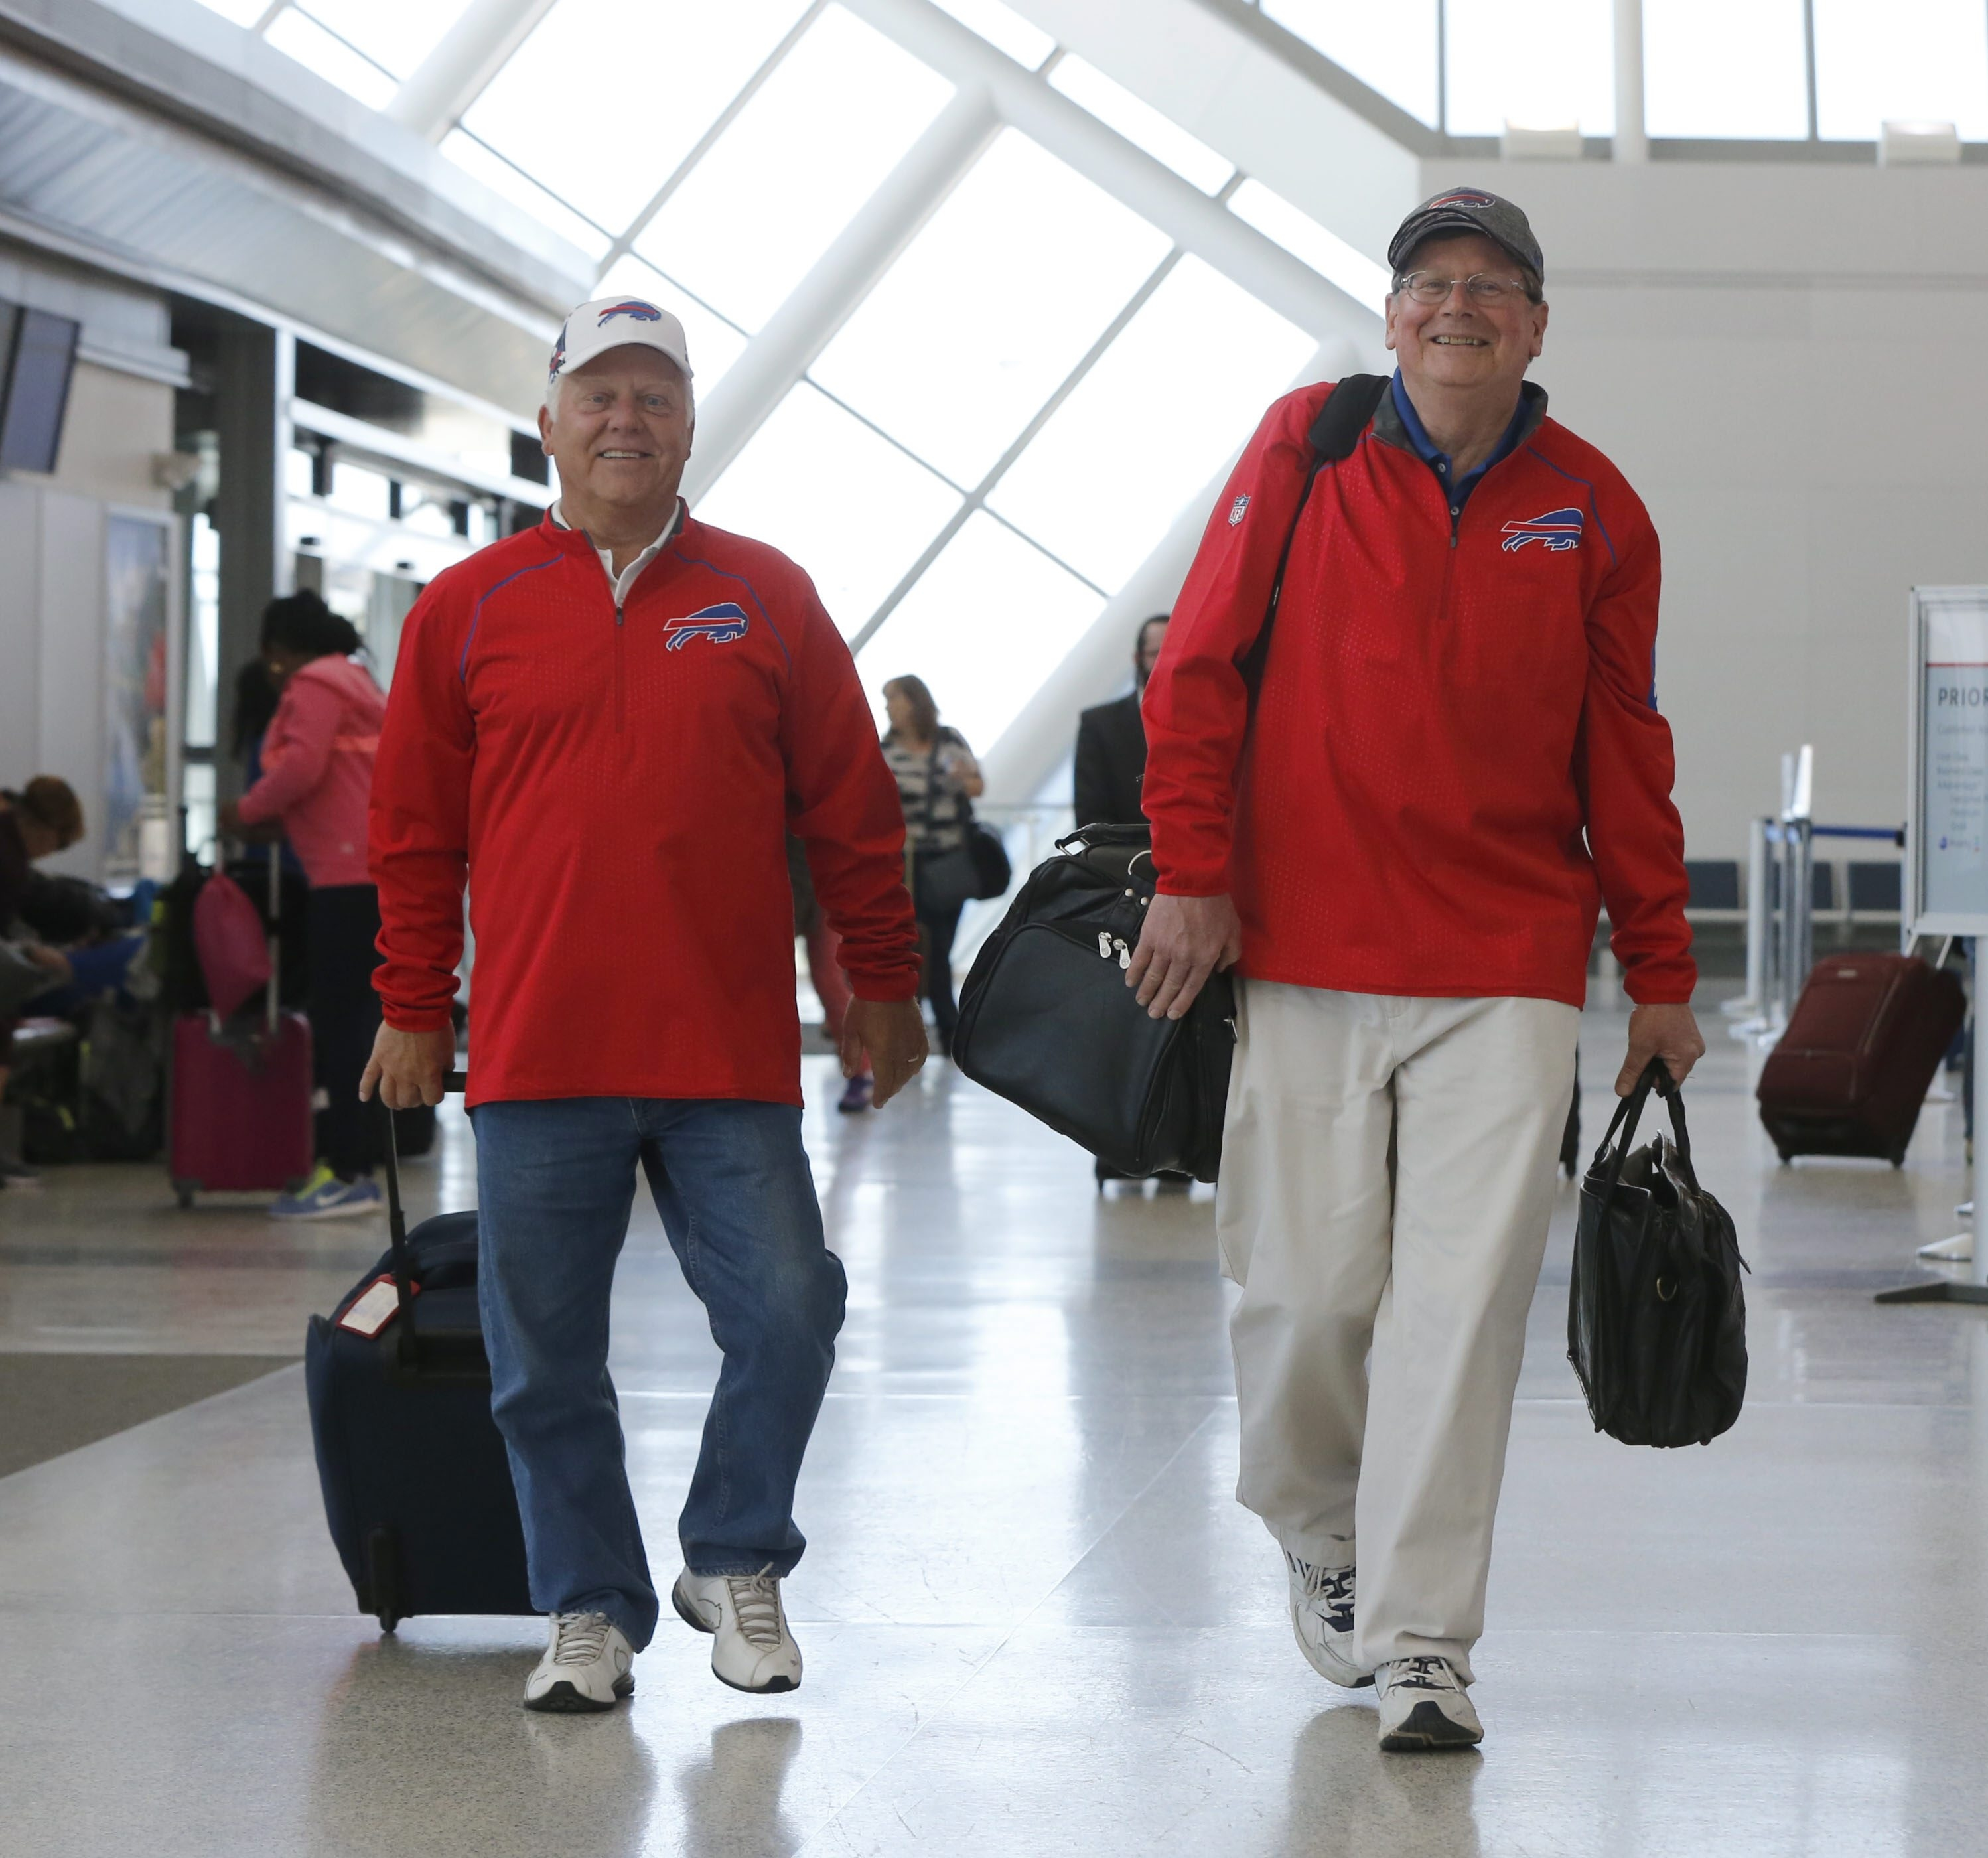 Mike Naab, left,  joins his friend Mark Derringer for a flight to Chicago after Derringer became the winner of a lottery among Bills season ticket-holders and will be the team's fan representative at the NFL Draft. (Harry Scull Jr./Buffalo News)